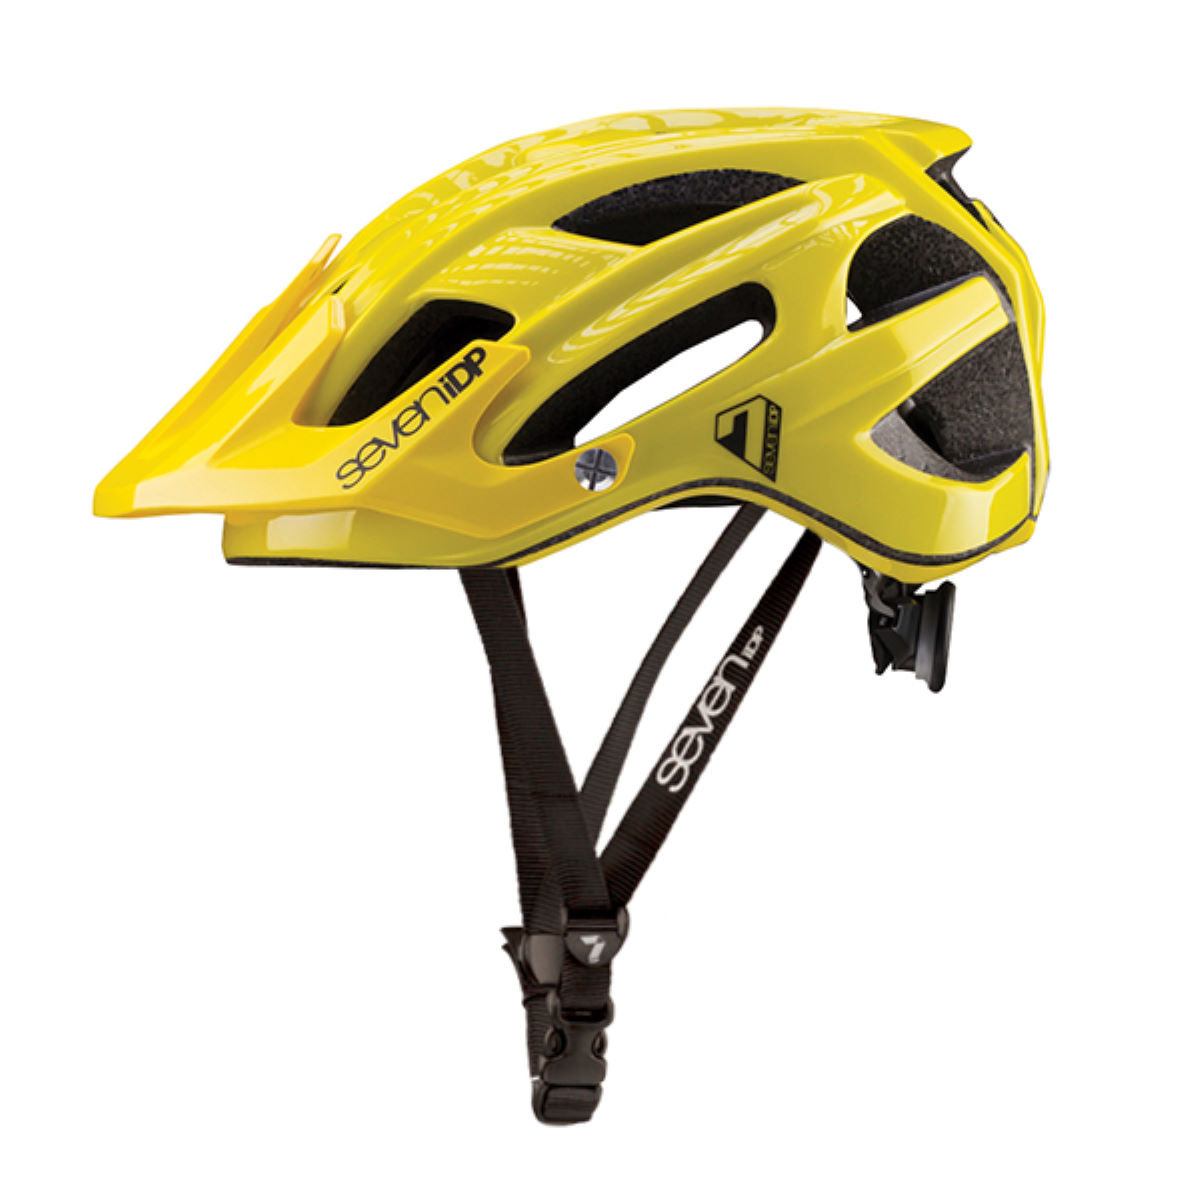 Casque 7 iDP M4 - L/XL Yellow - Graphite Casques VTT